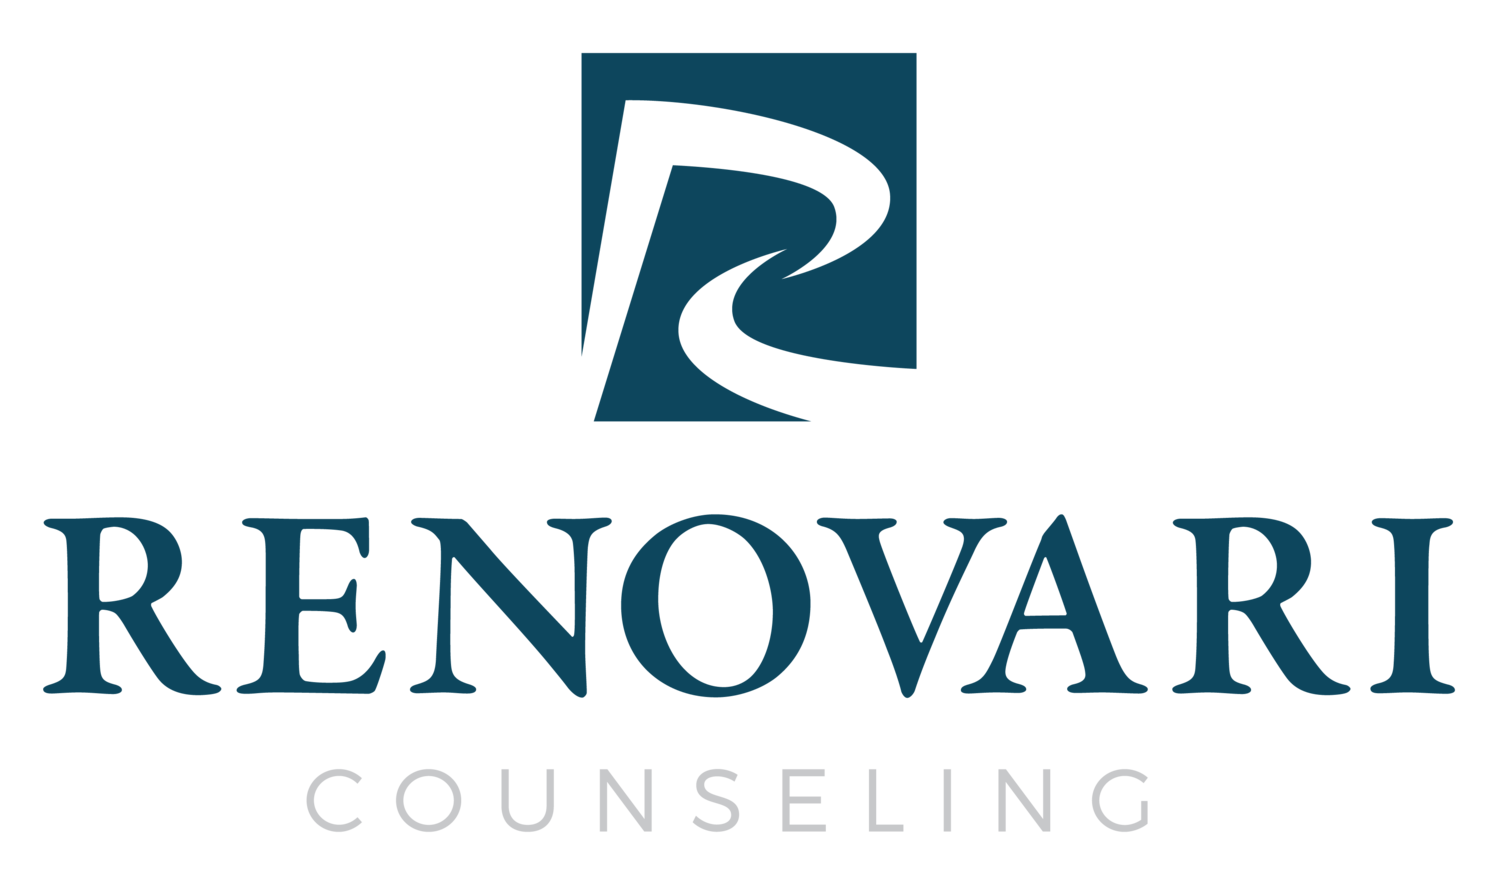 Renovari Counseling Brea California